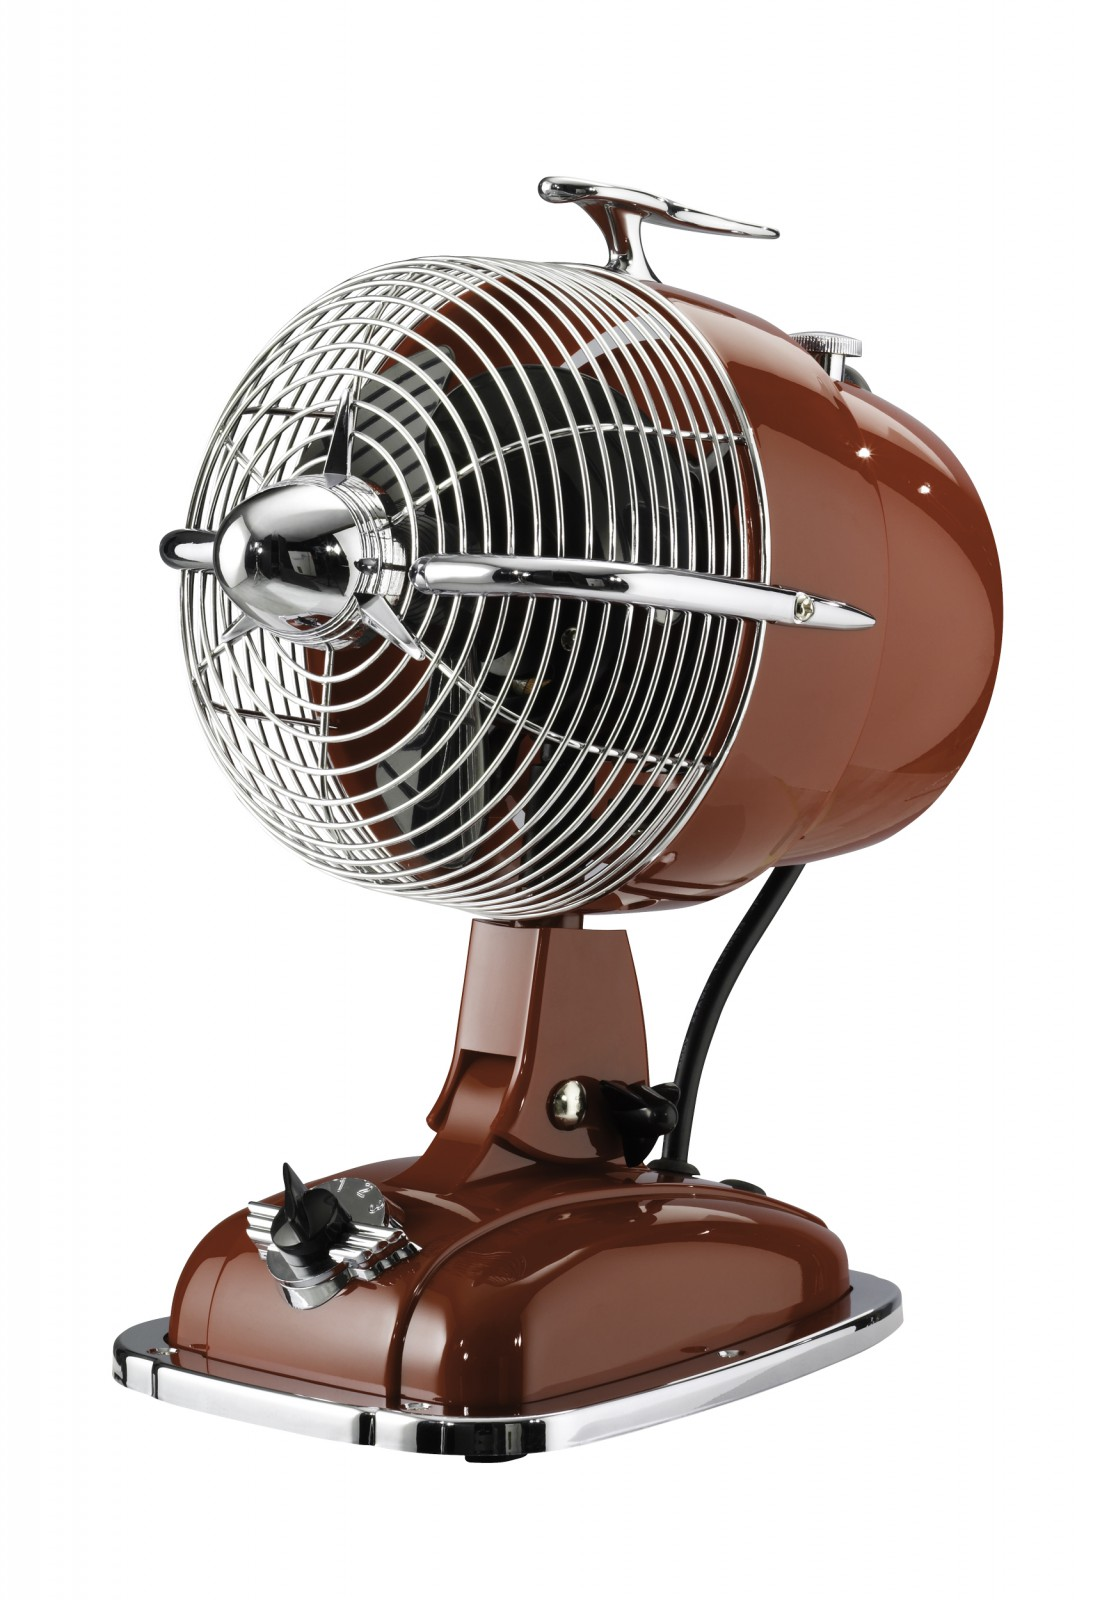 CasaFan desk fan